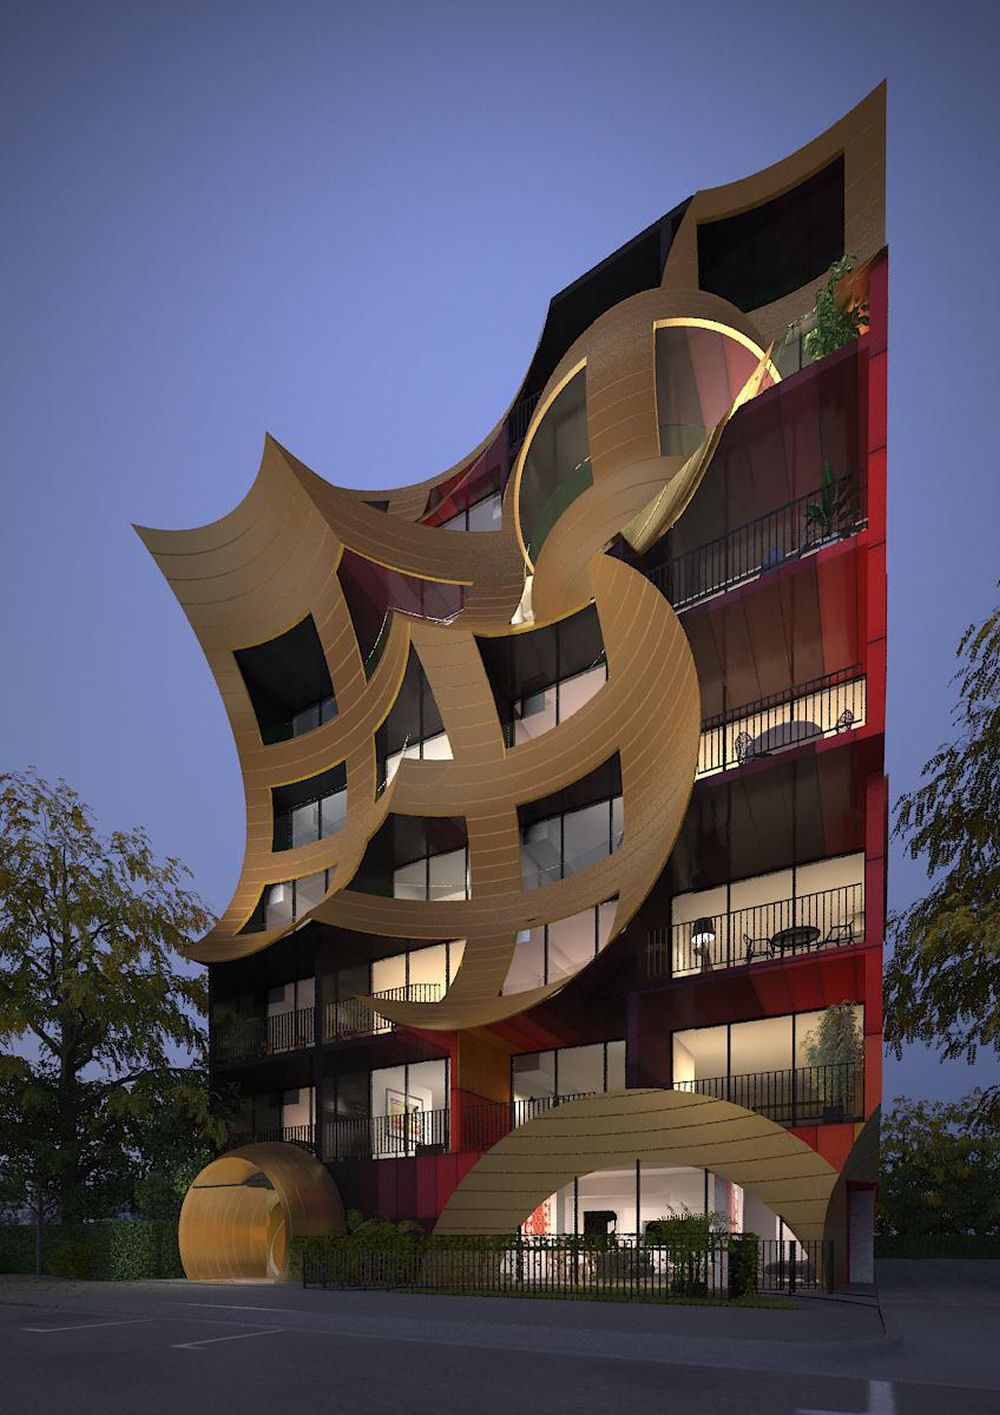 A Very Futuristic Architectural Display Orbis Apartments In